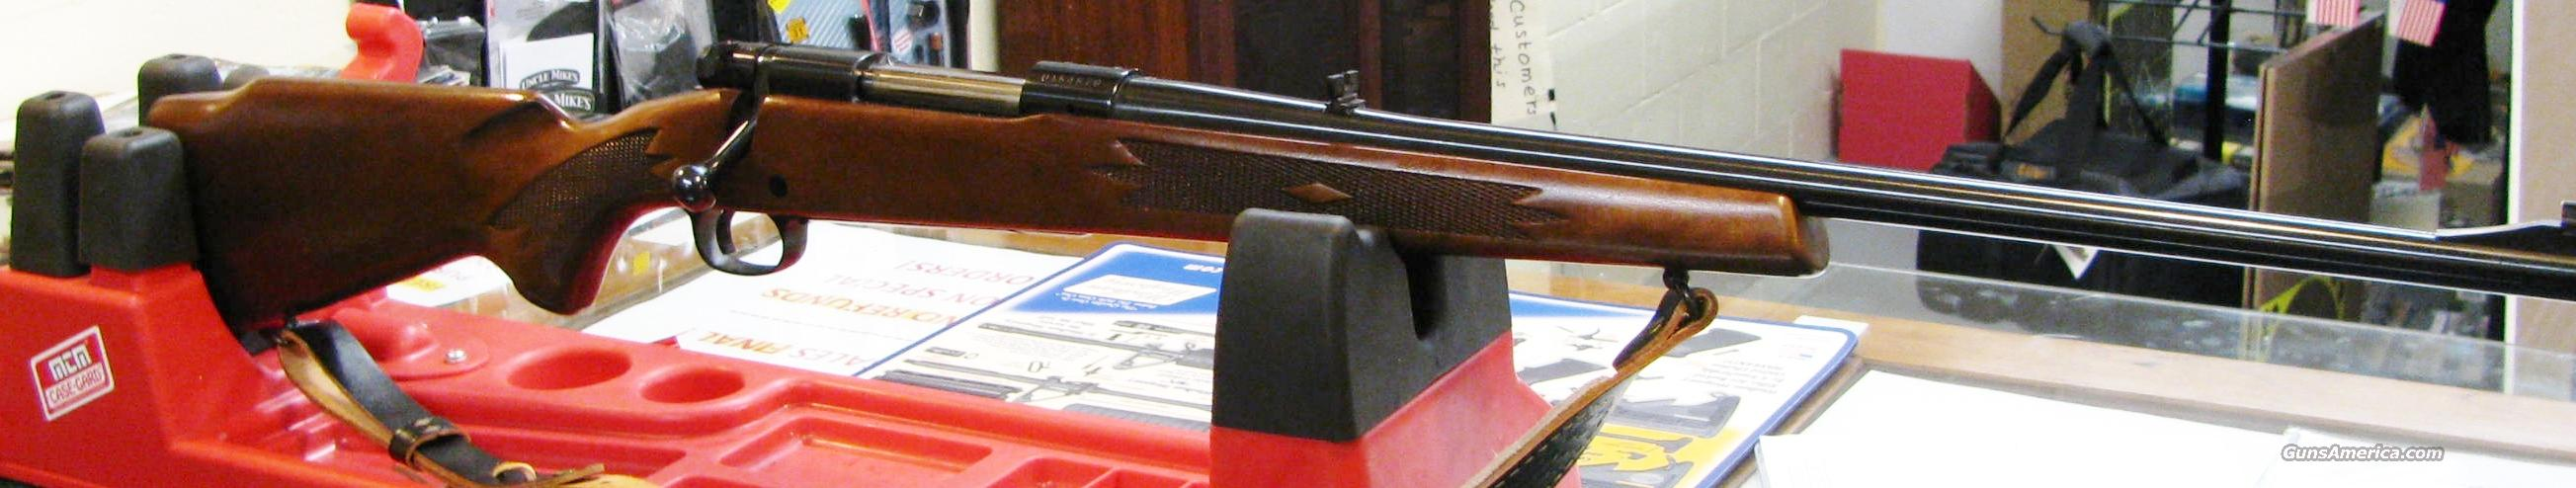 Ted Williams Model 53 Winchester 70  Guns > Rifles > Winchester Rifles - Modern Bolt/Auto/Single > Model 70 > Post-64